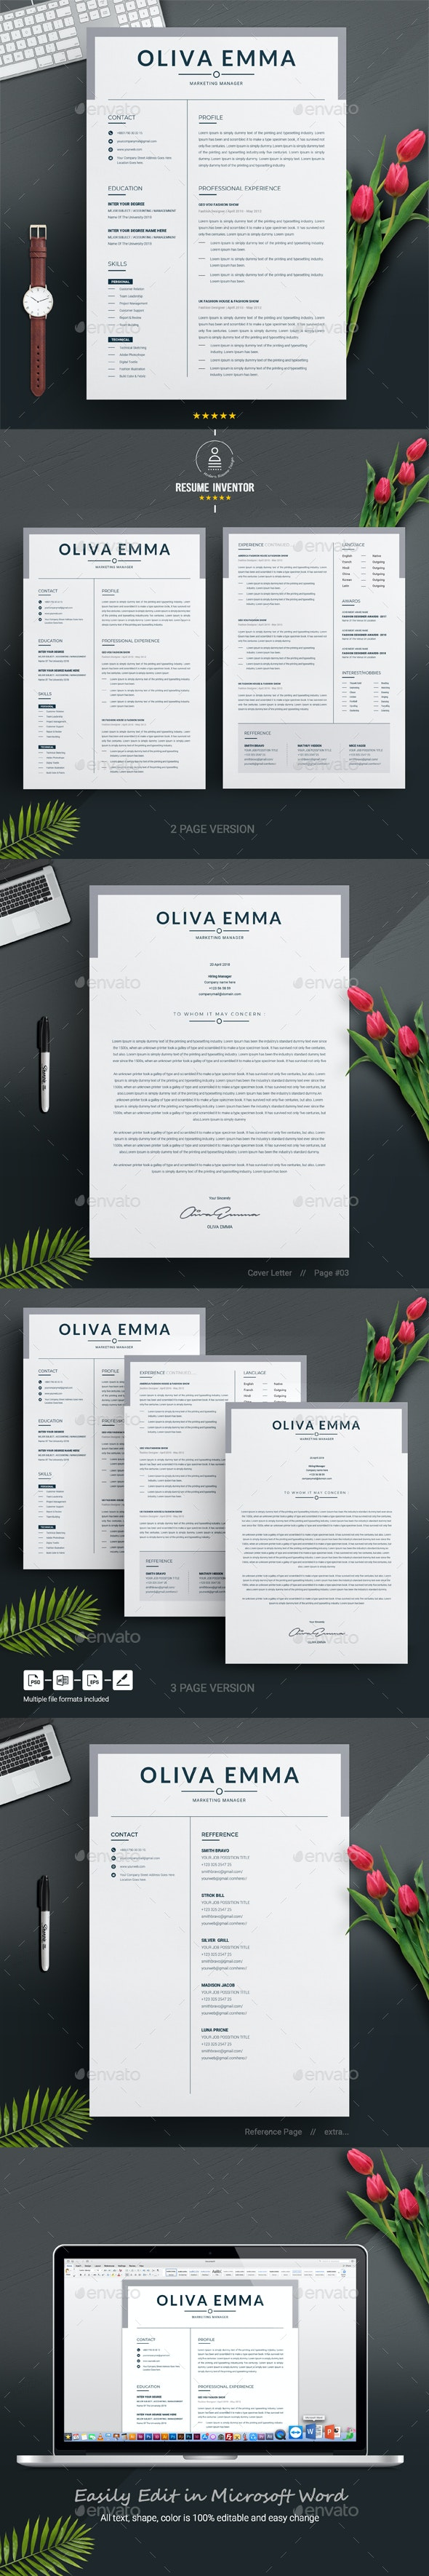 CV - Resumes Stationery